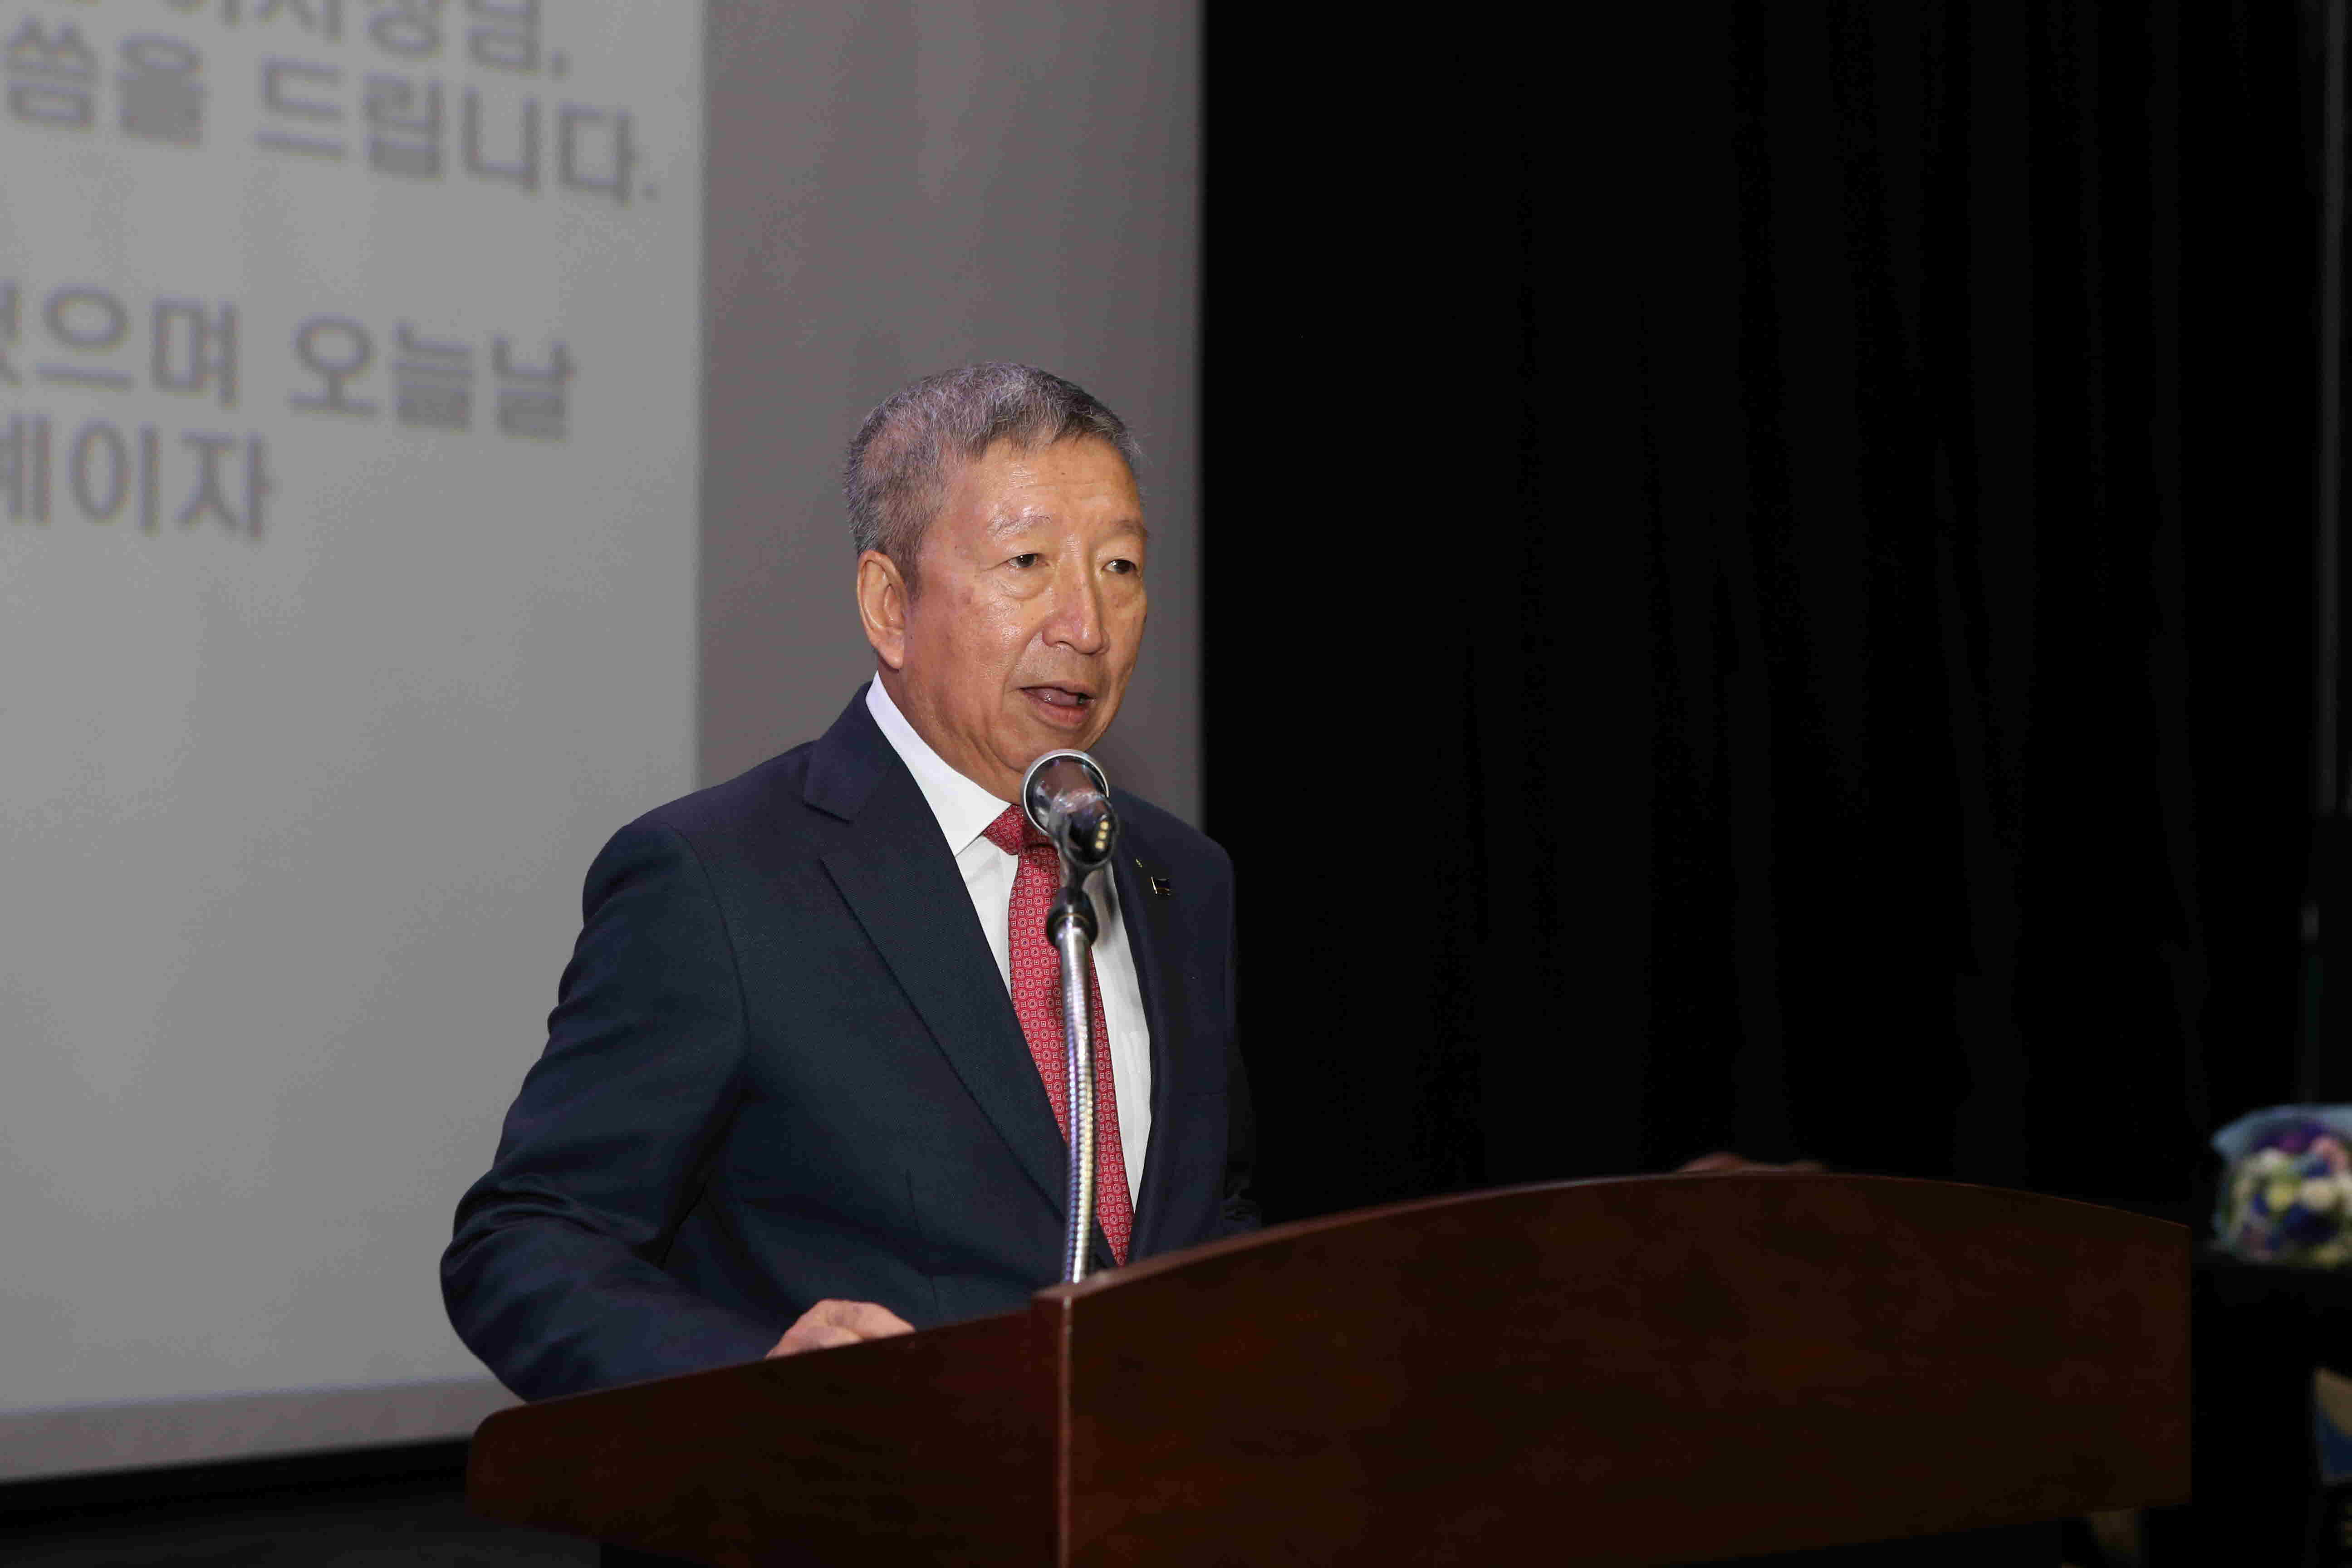 Kukkiwon Honorary Chairman Ng Ser Miang elected as the Vice-President of the IOC